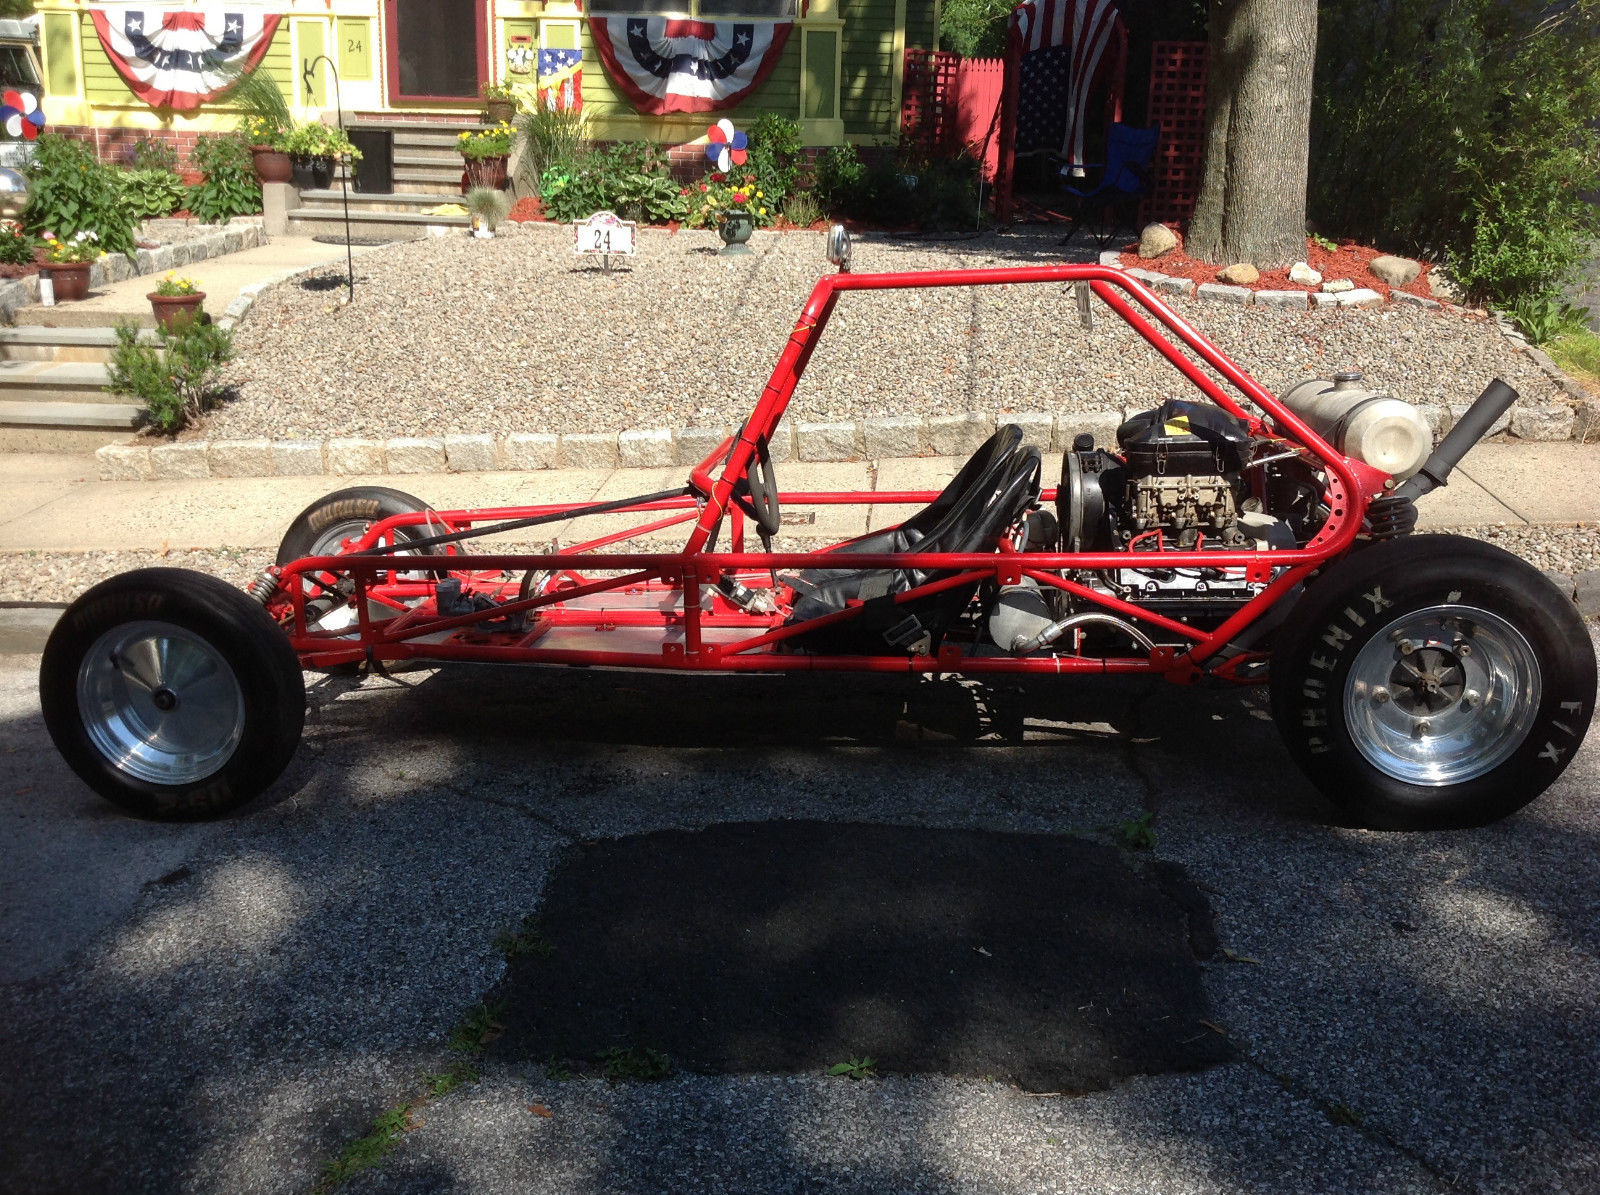 street legal dune buggy frames photo16 - Dune Buggy Frames For Sale